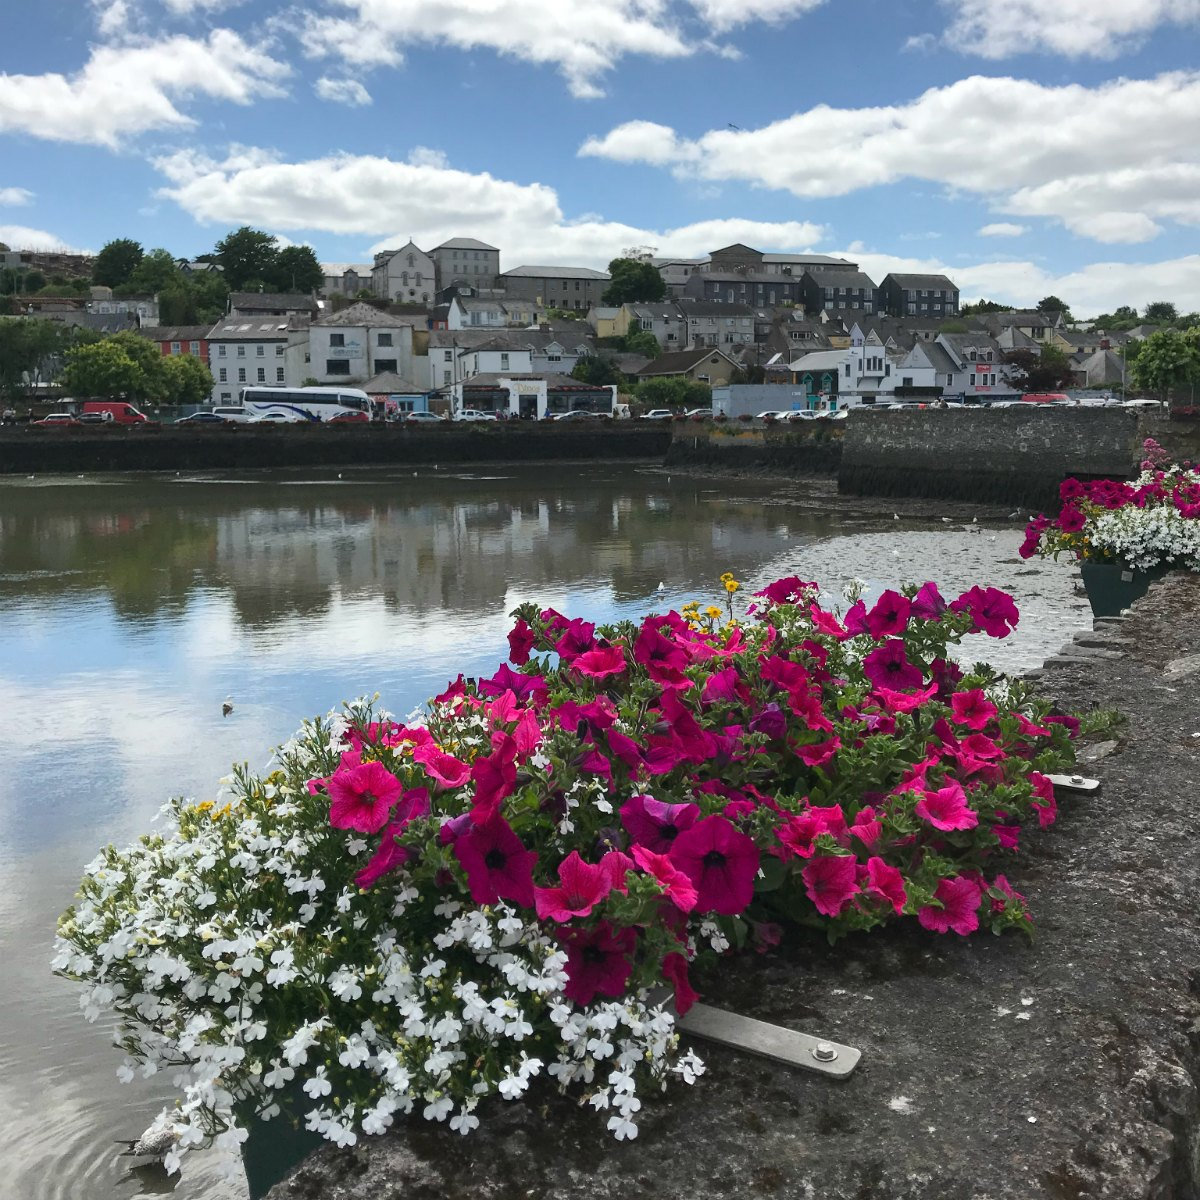 Snaphots from Ireland - Kinsale 1